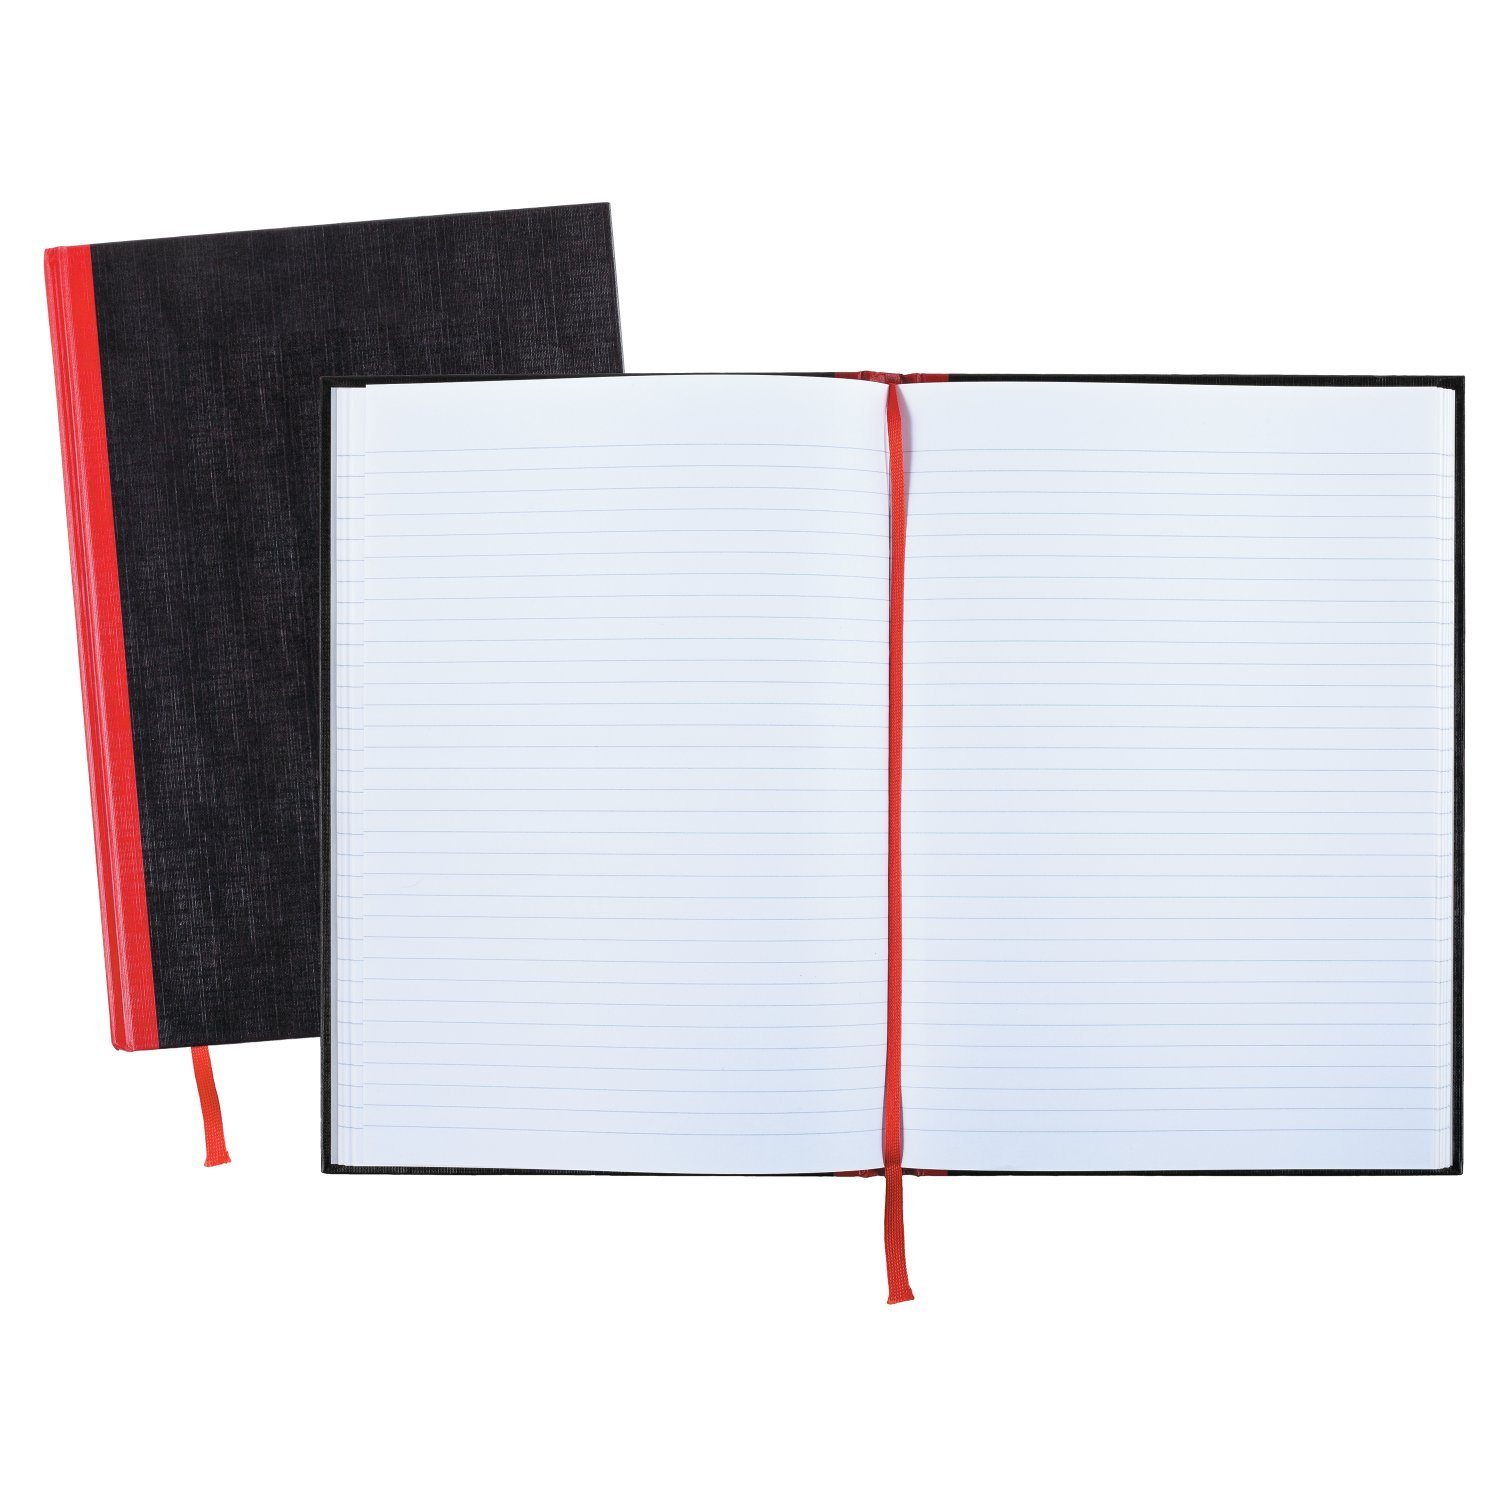 Black n' Red Hardcover Executive Notebook, 11.75 x 8.25 Inches, Black, 96 sheets/192 pages, 3 Pack